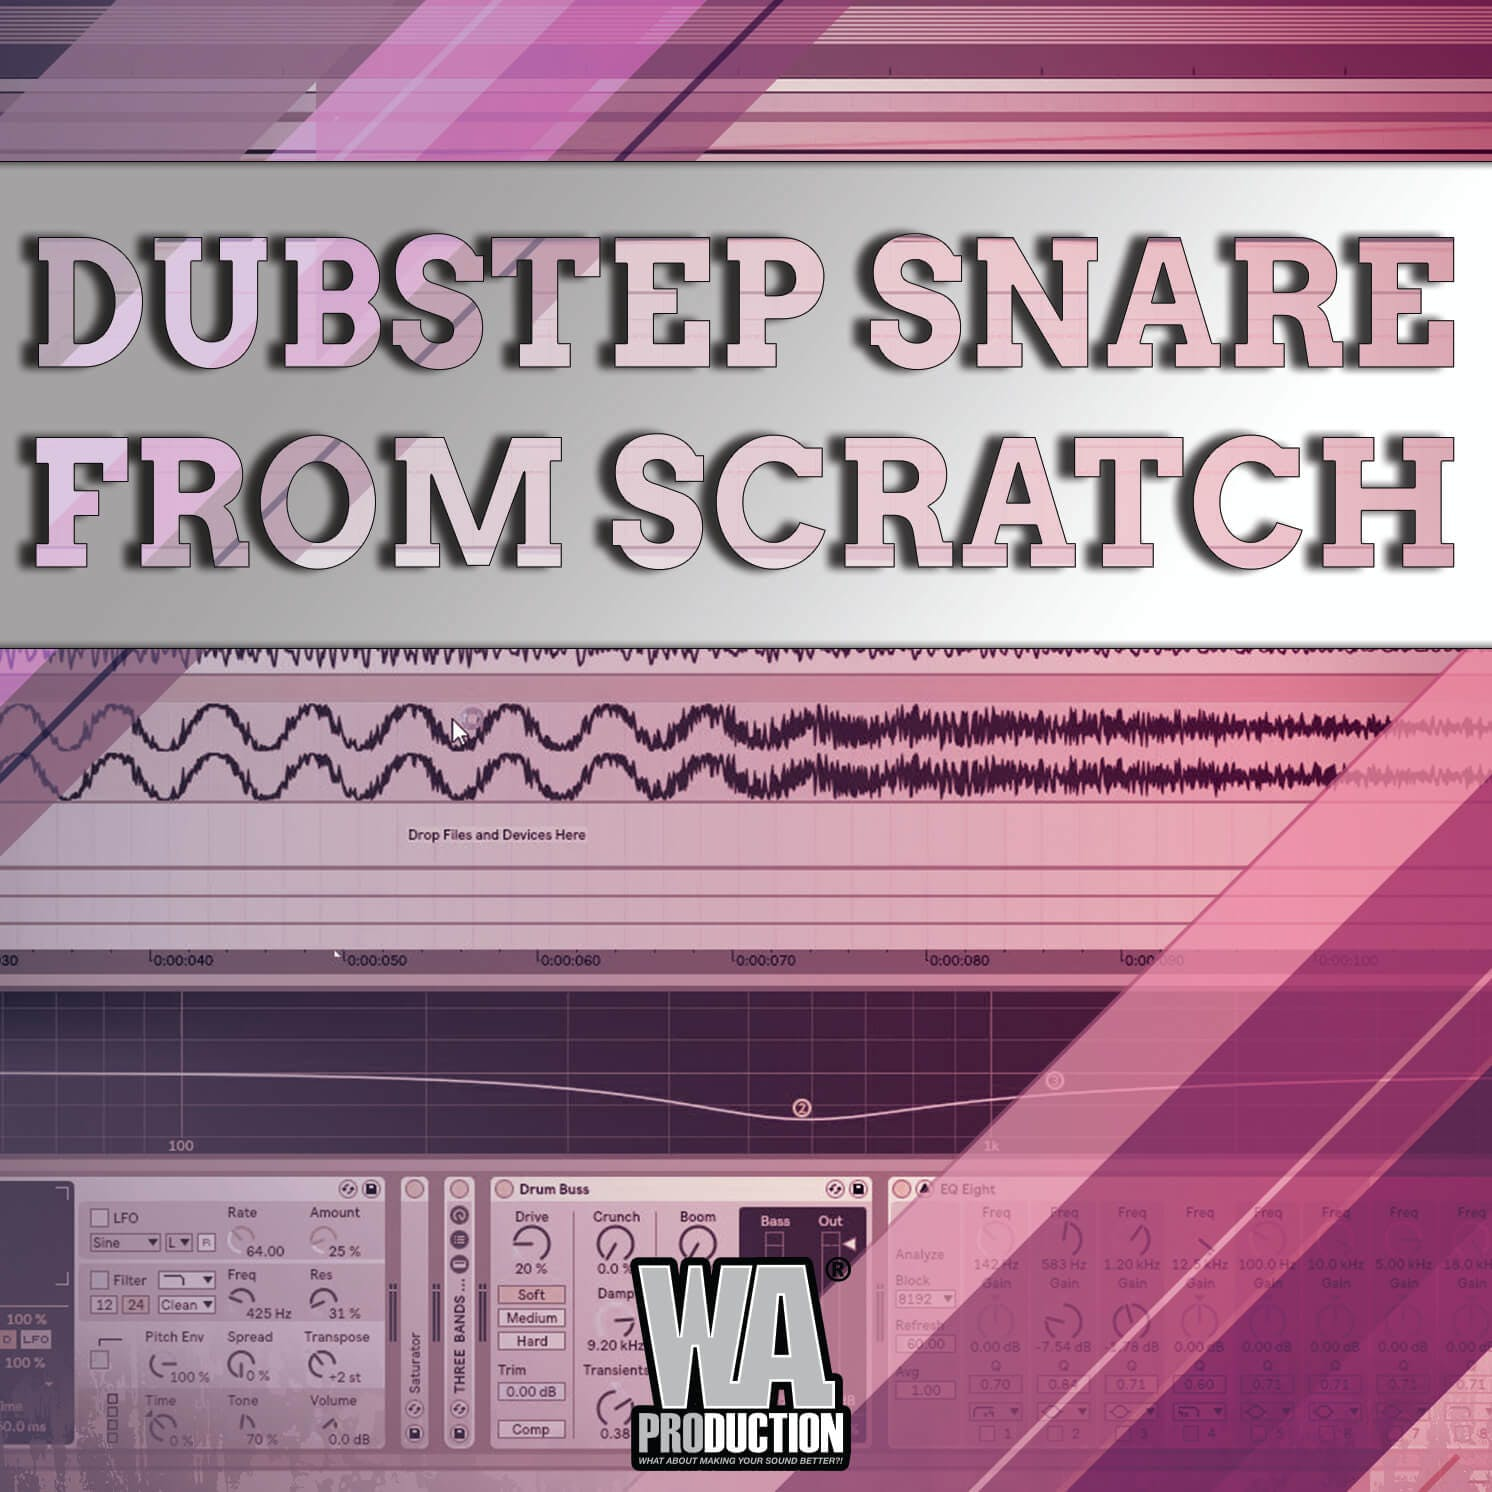 Make Dubstep Snare From Scratch